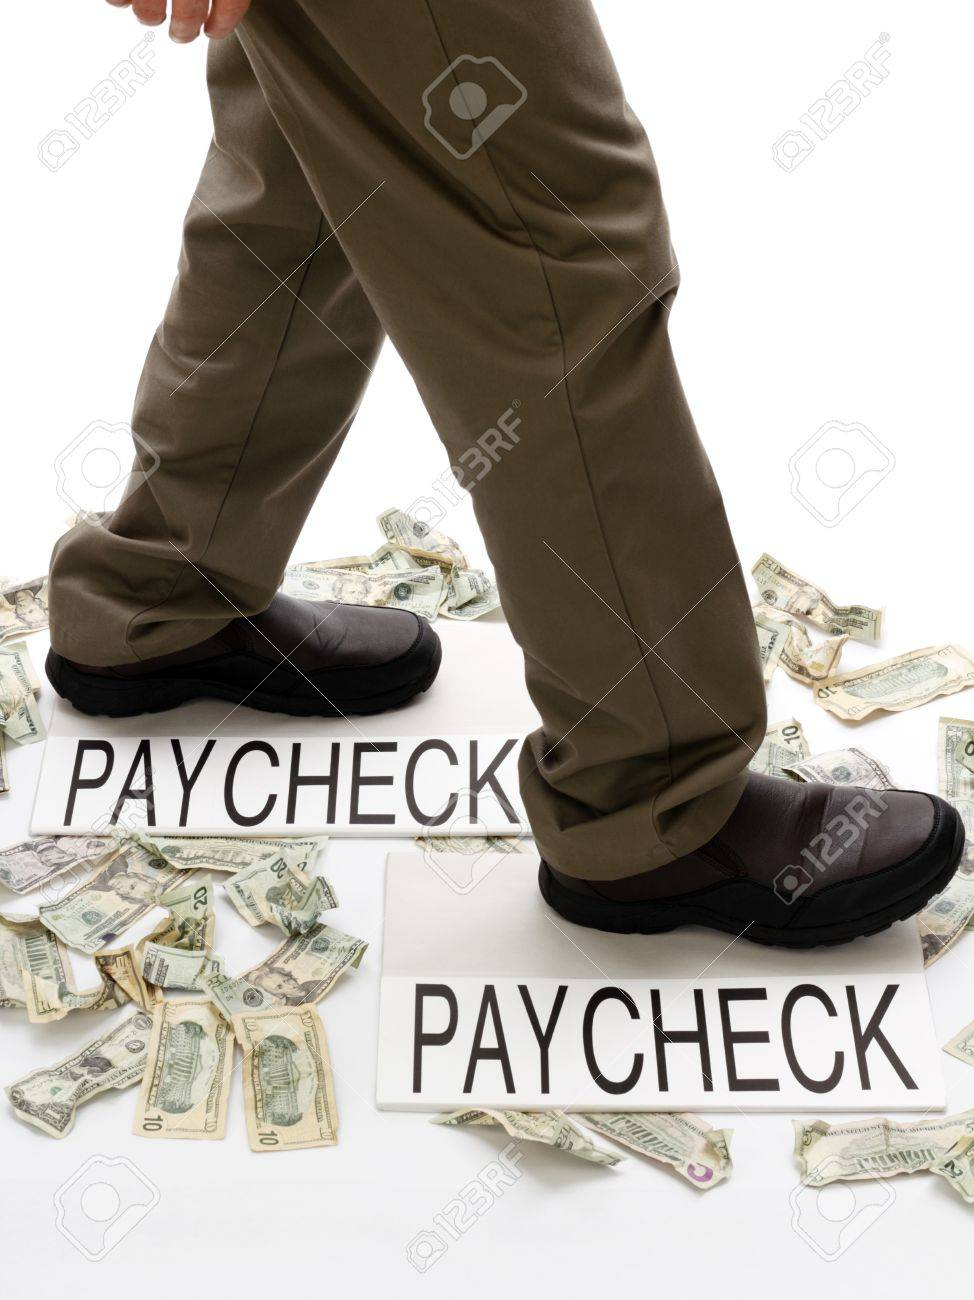 Person stepping from paycheck to paycheck with spent money lying crumpled on the ground. Stock Photo - 10878800